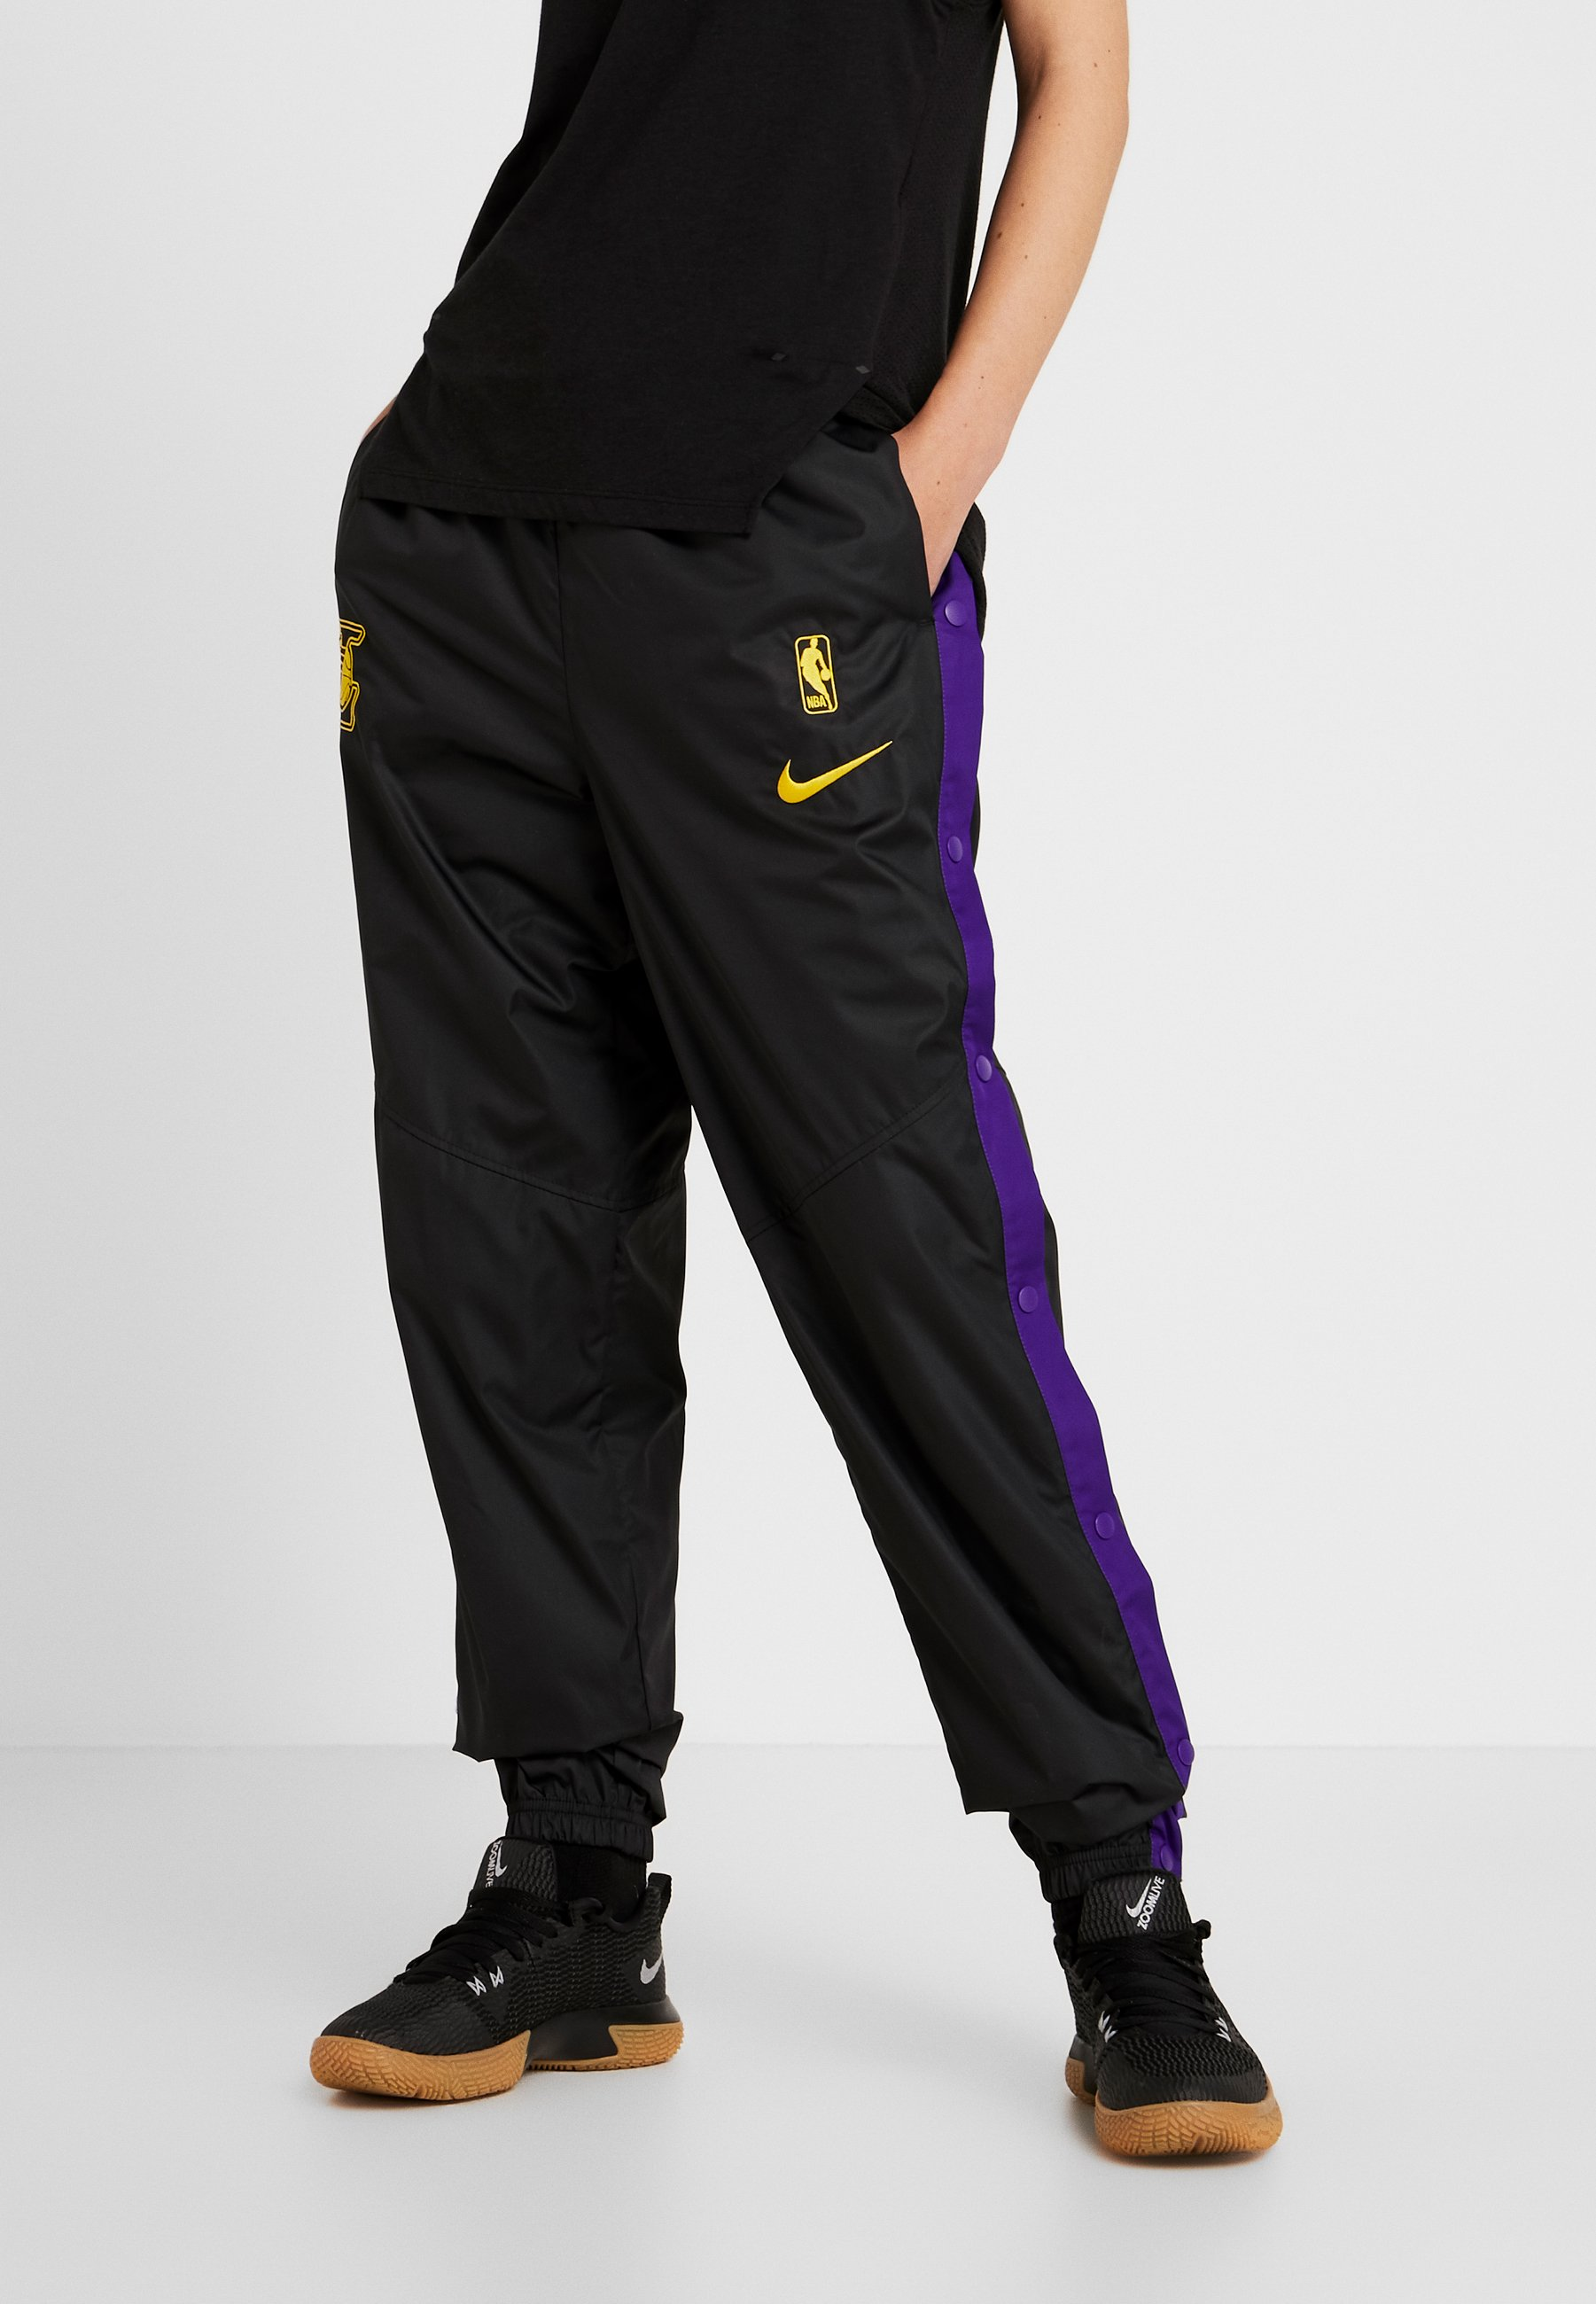 NBA LA LAKERS WOMENS SNAP PANT Article de supporter blackfield purple